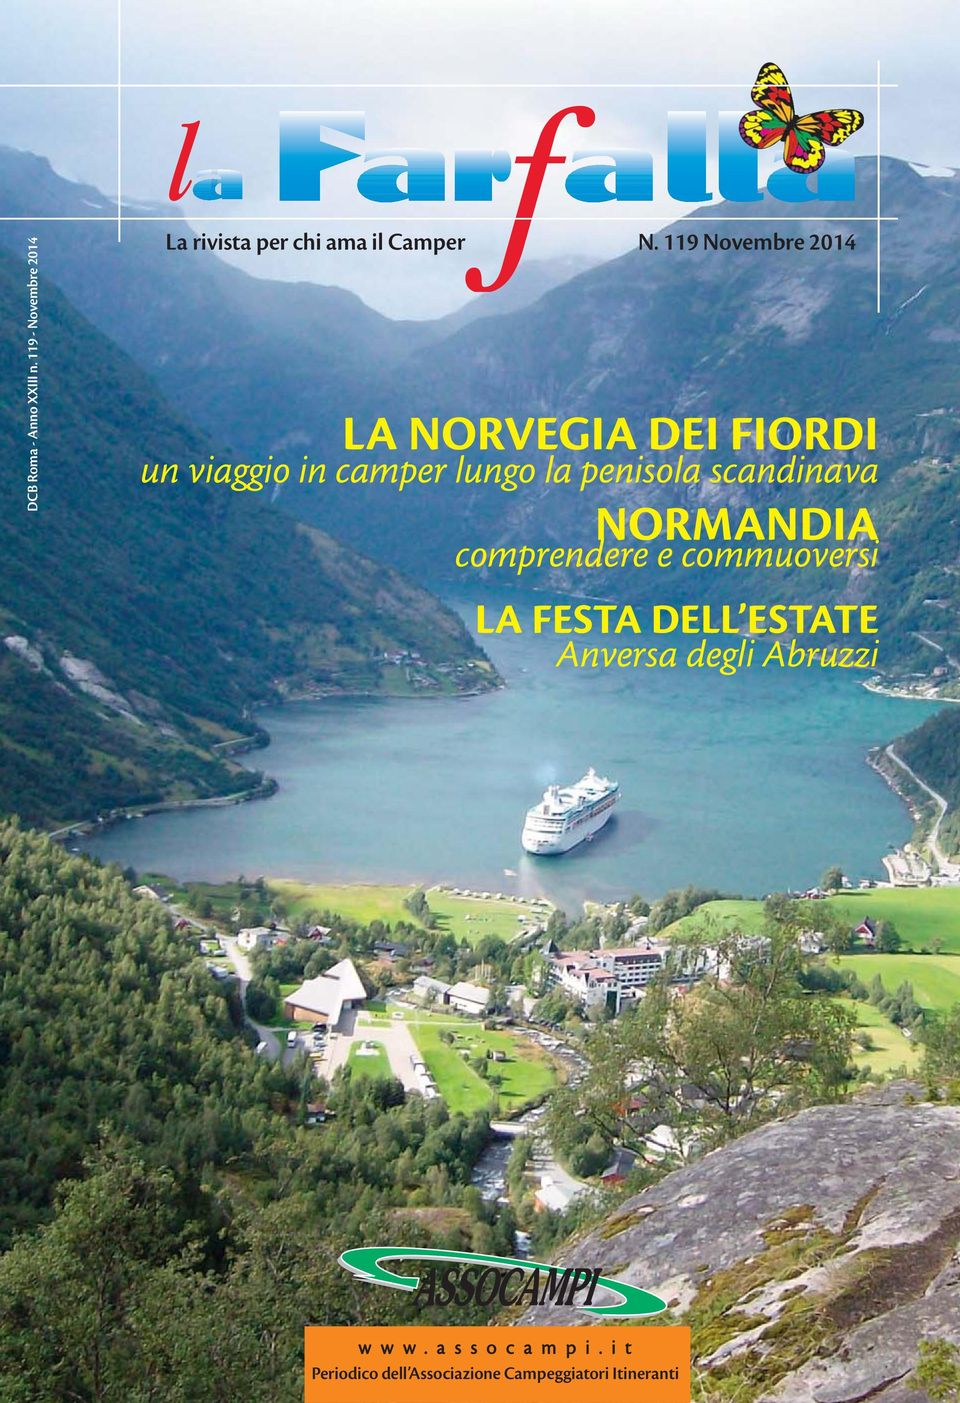 scandinava NORMANDIA comprendere e commuoversi LA FESTA DELL ESTATE Anversa